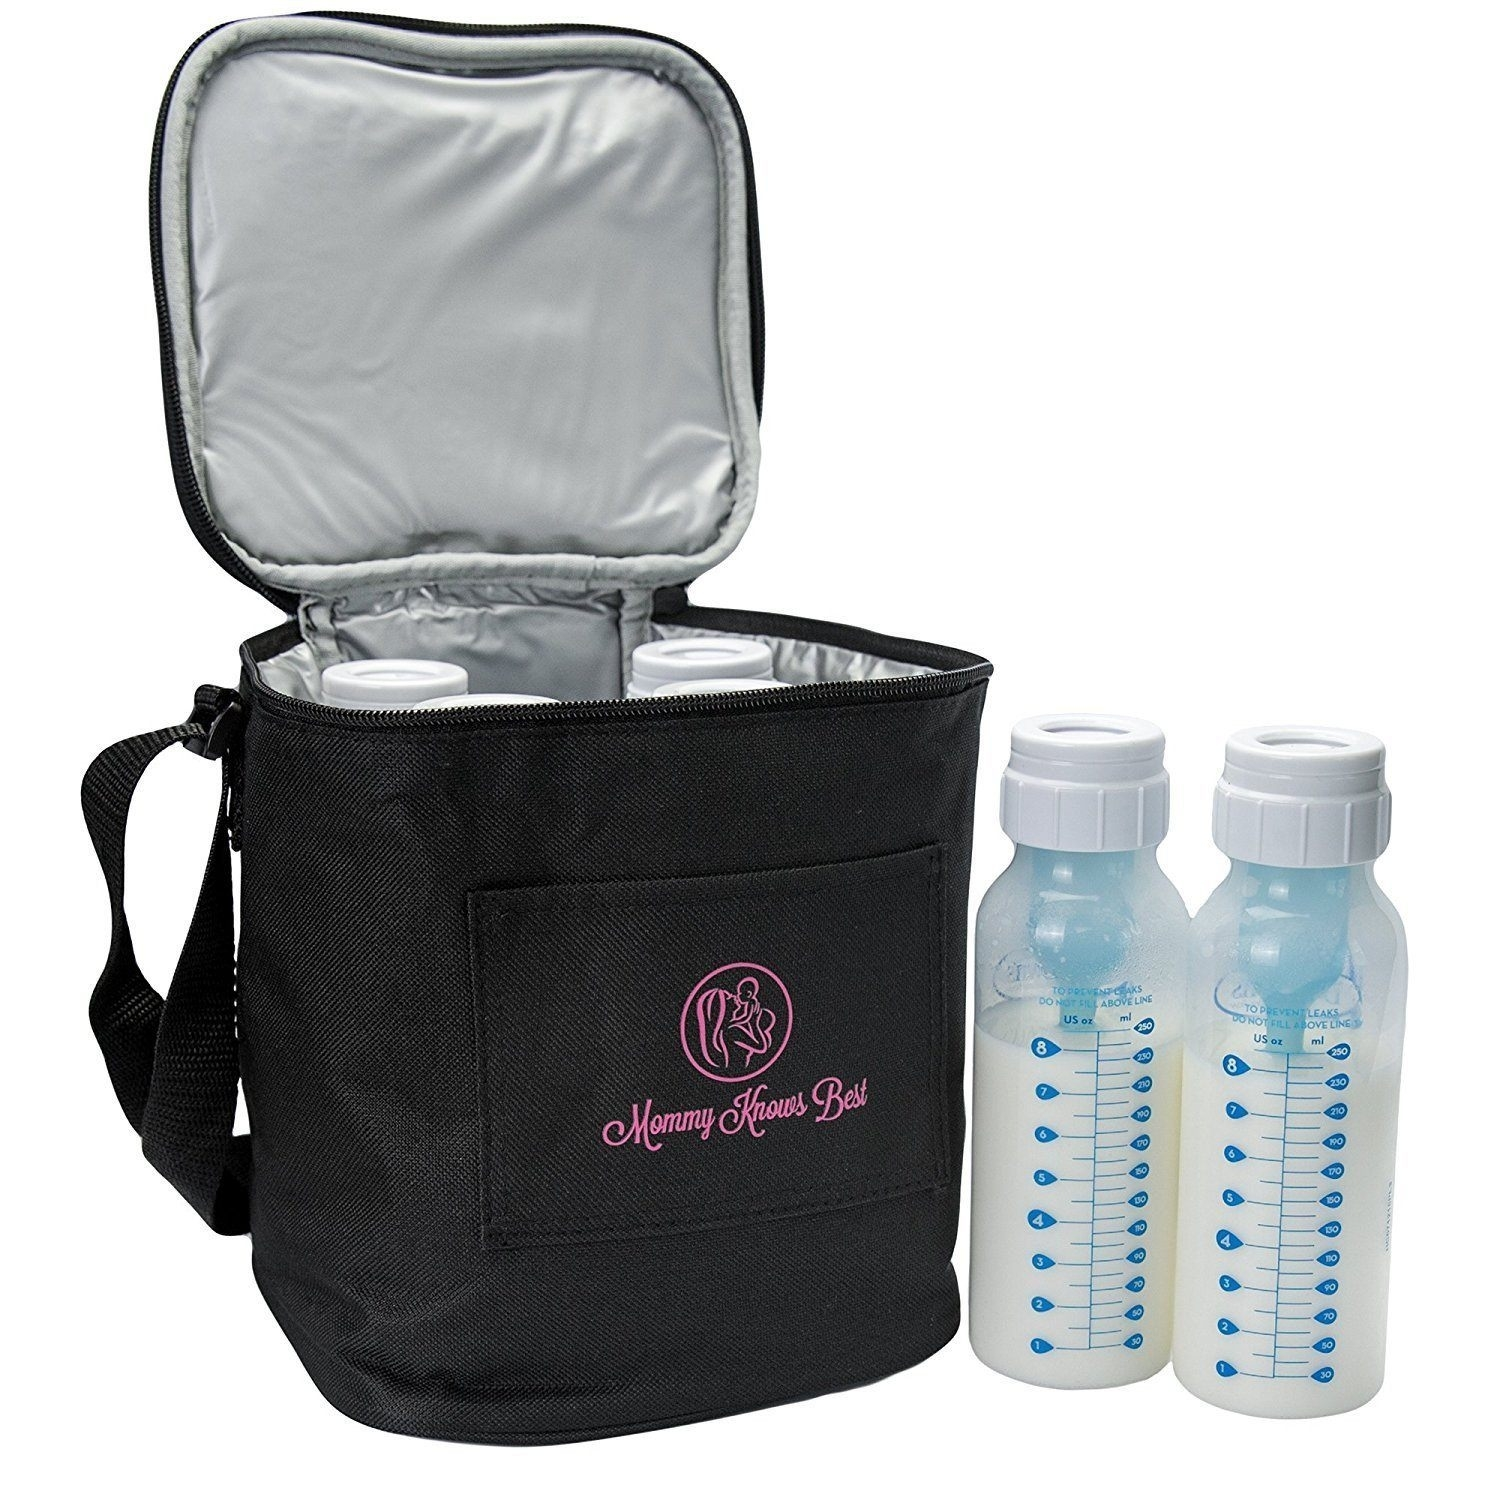 Extra Tall Breast Milk Baby Bottle Cooler Bag (Fits up to 8 Oz. Bottles) 59b6dbe7a020af3ebe5f5283